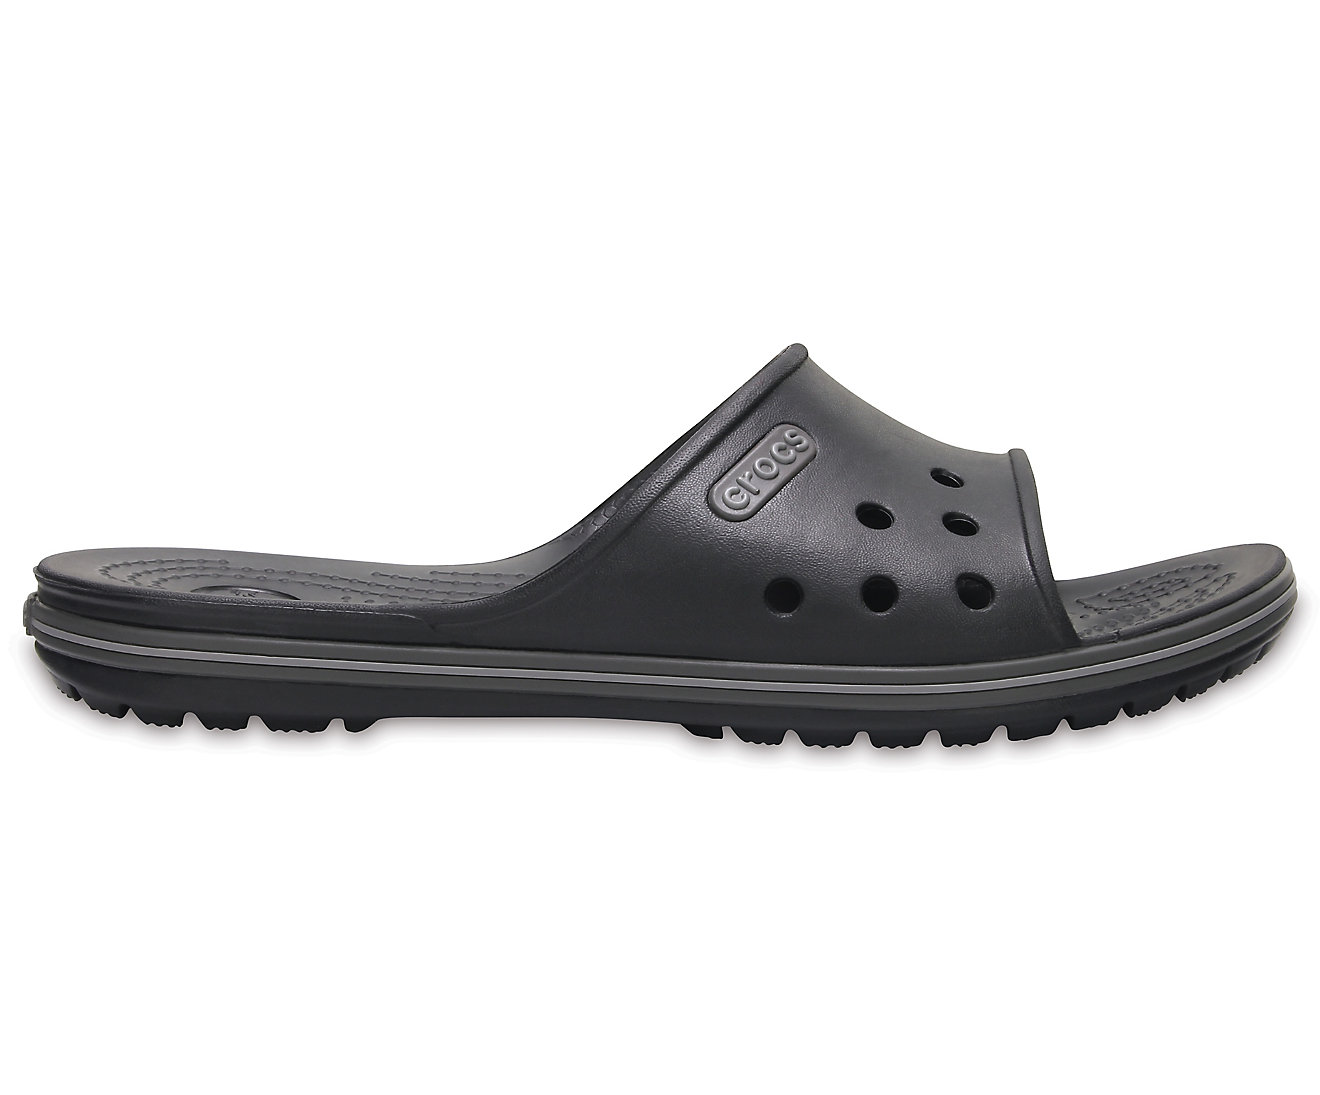 Crocs Jibbitz Brand New With Tags